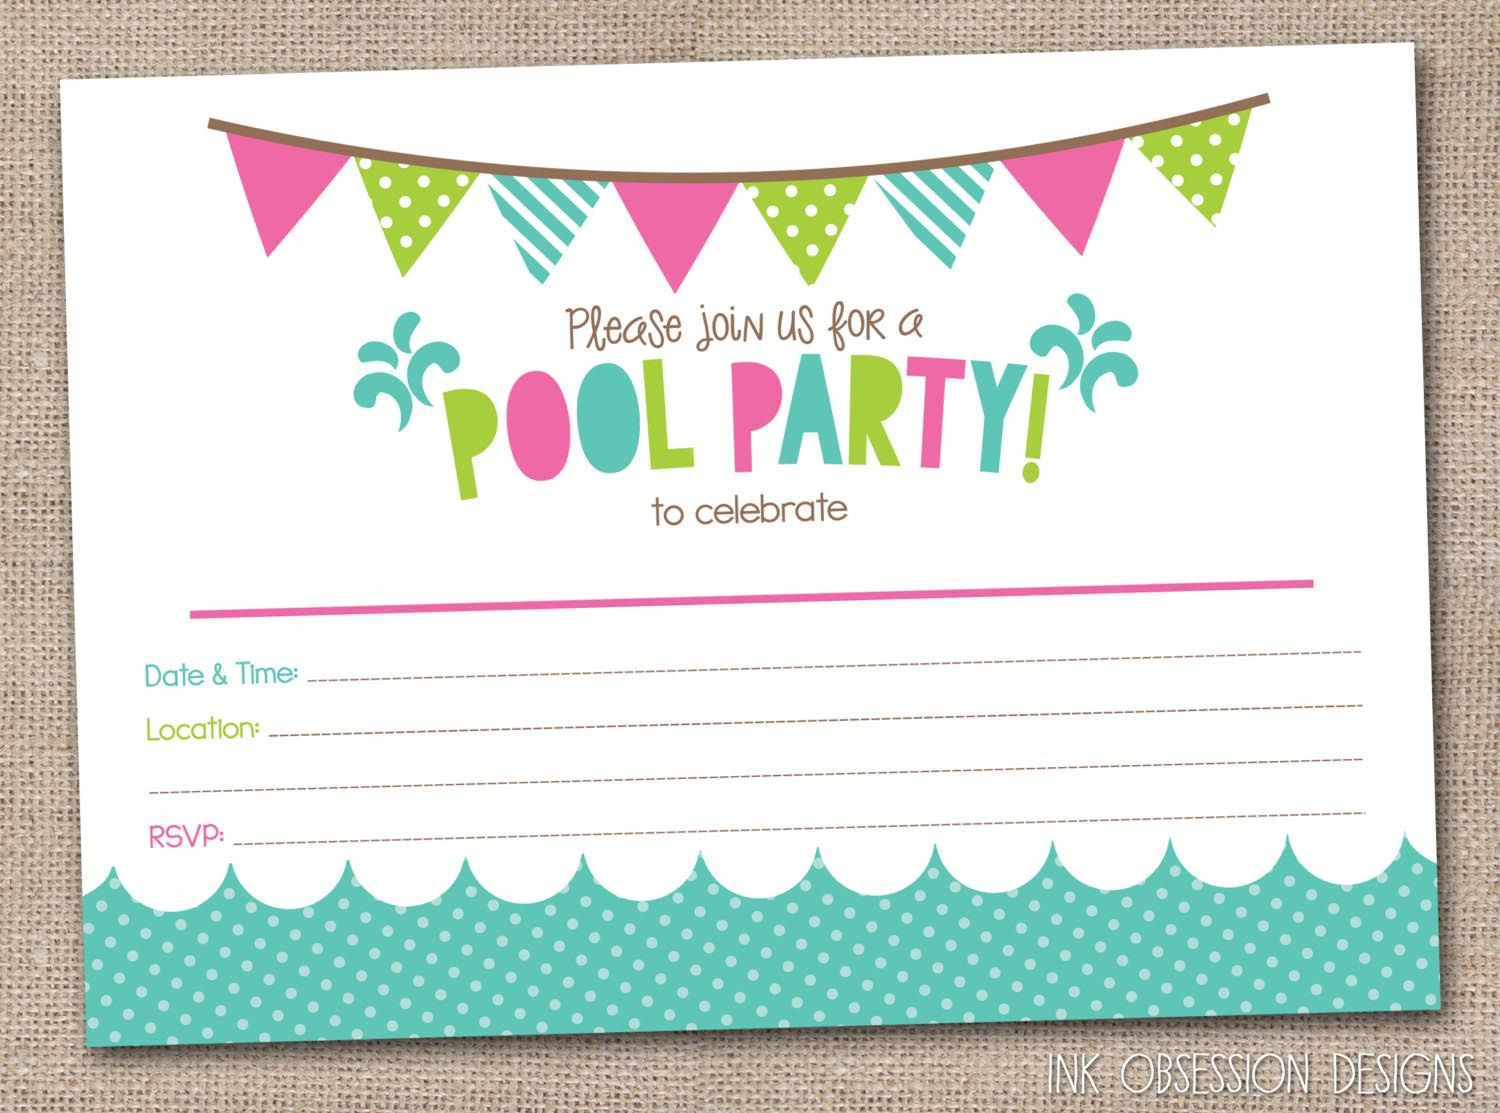 Best ideas about Free Printable Birthday Invitations For Girl . Save or Pin Free Printable Pool Party Birthday Invitations Now.